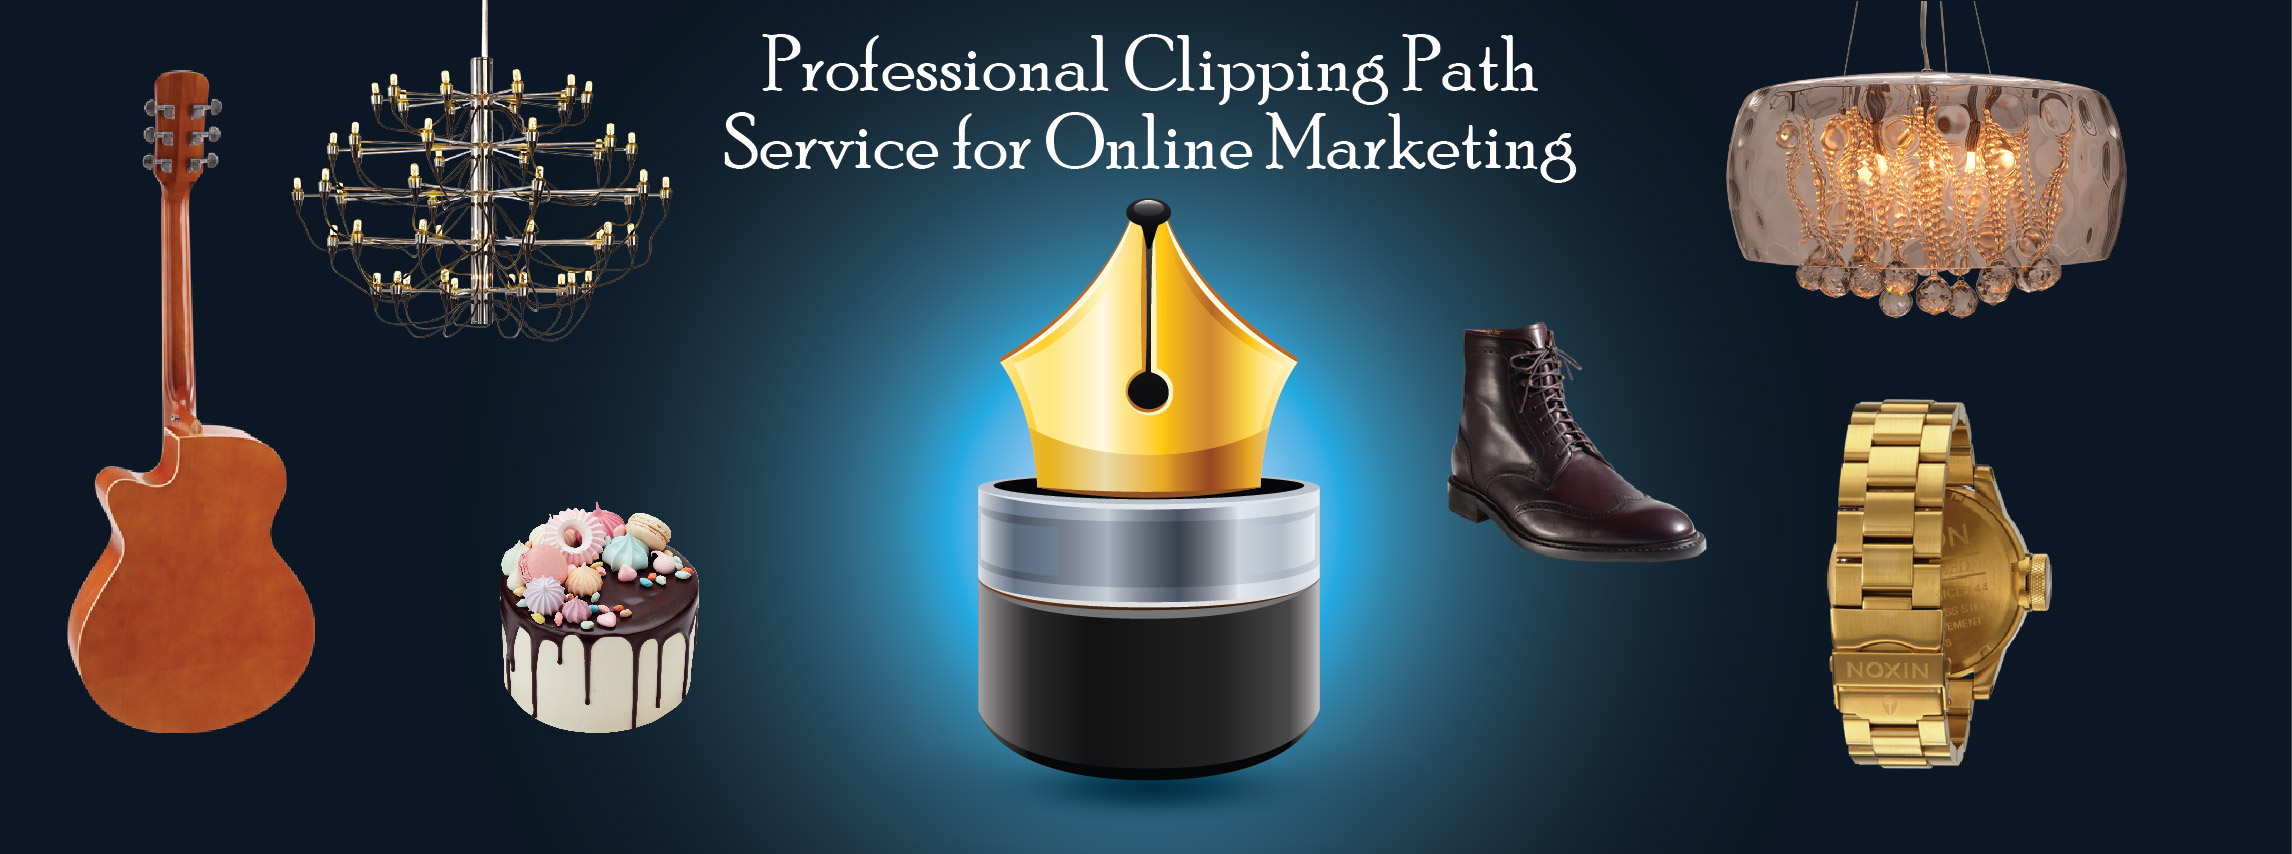 Professional Clipping Path Service for Online Marketing